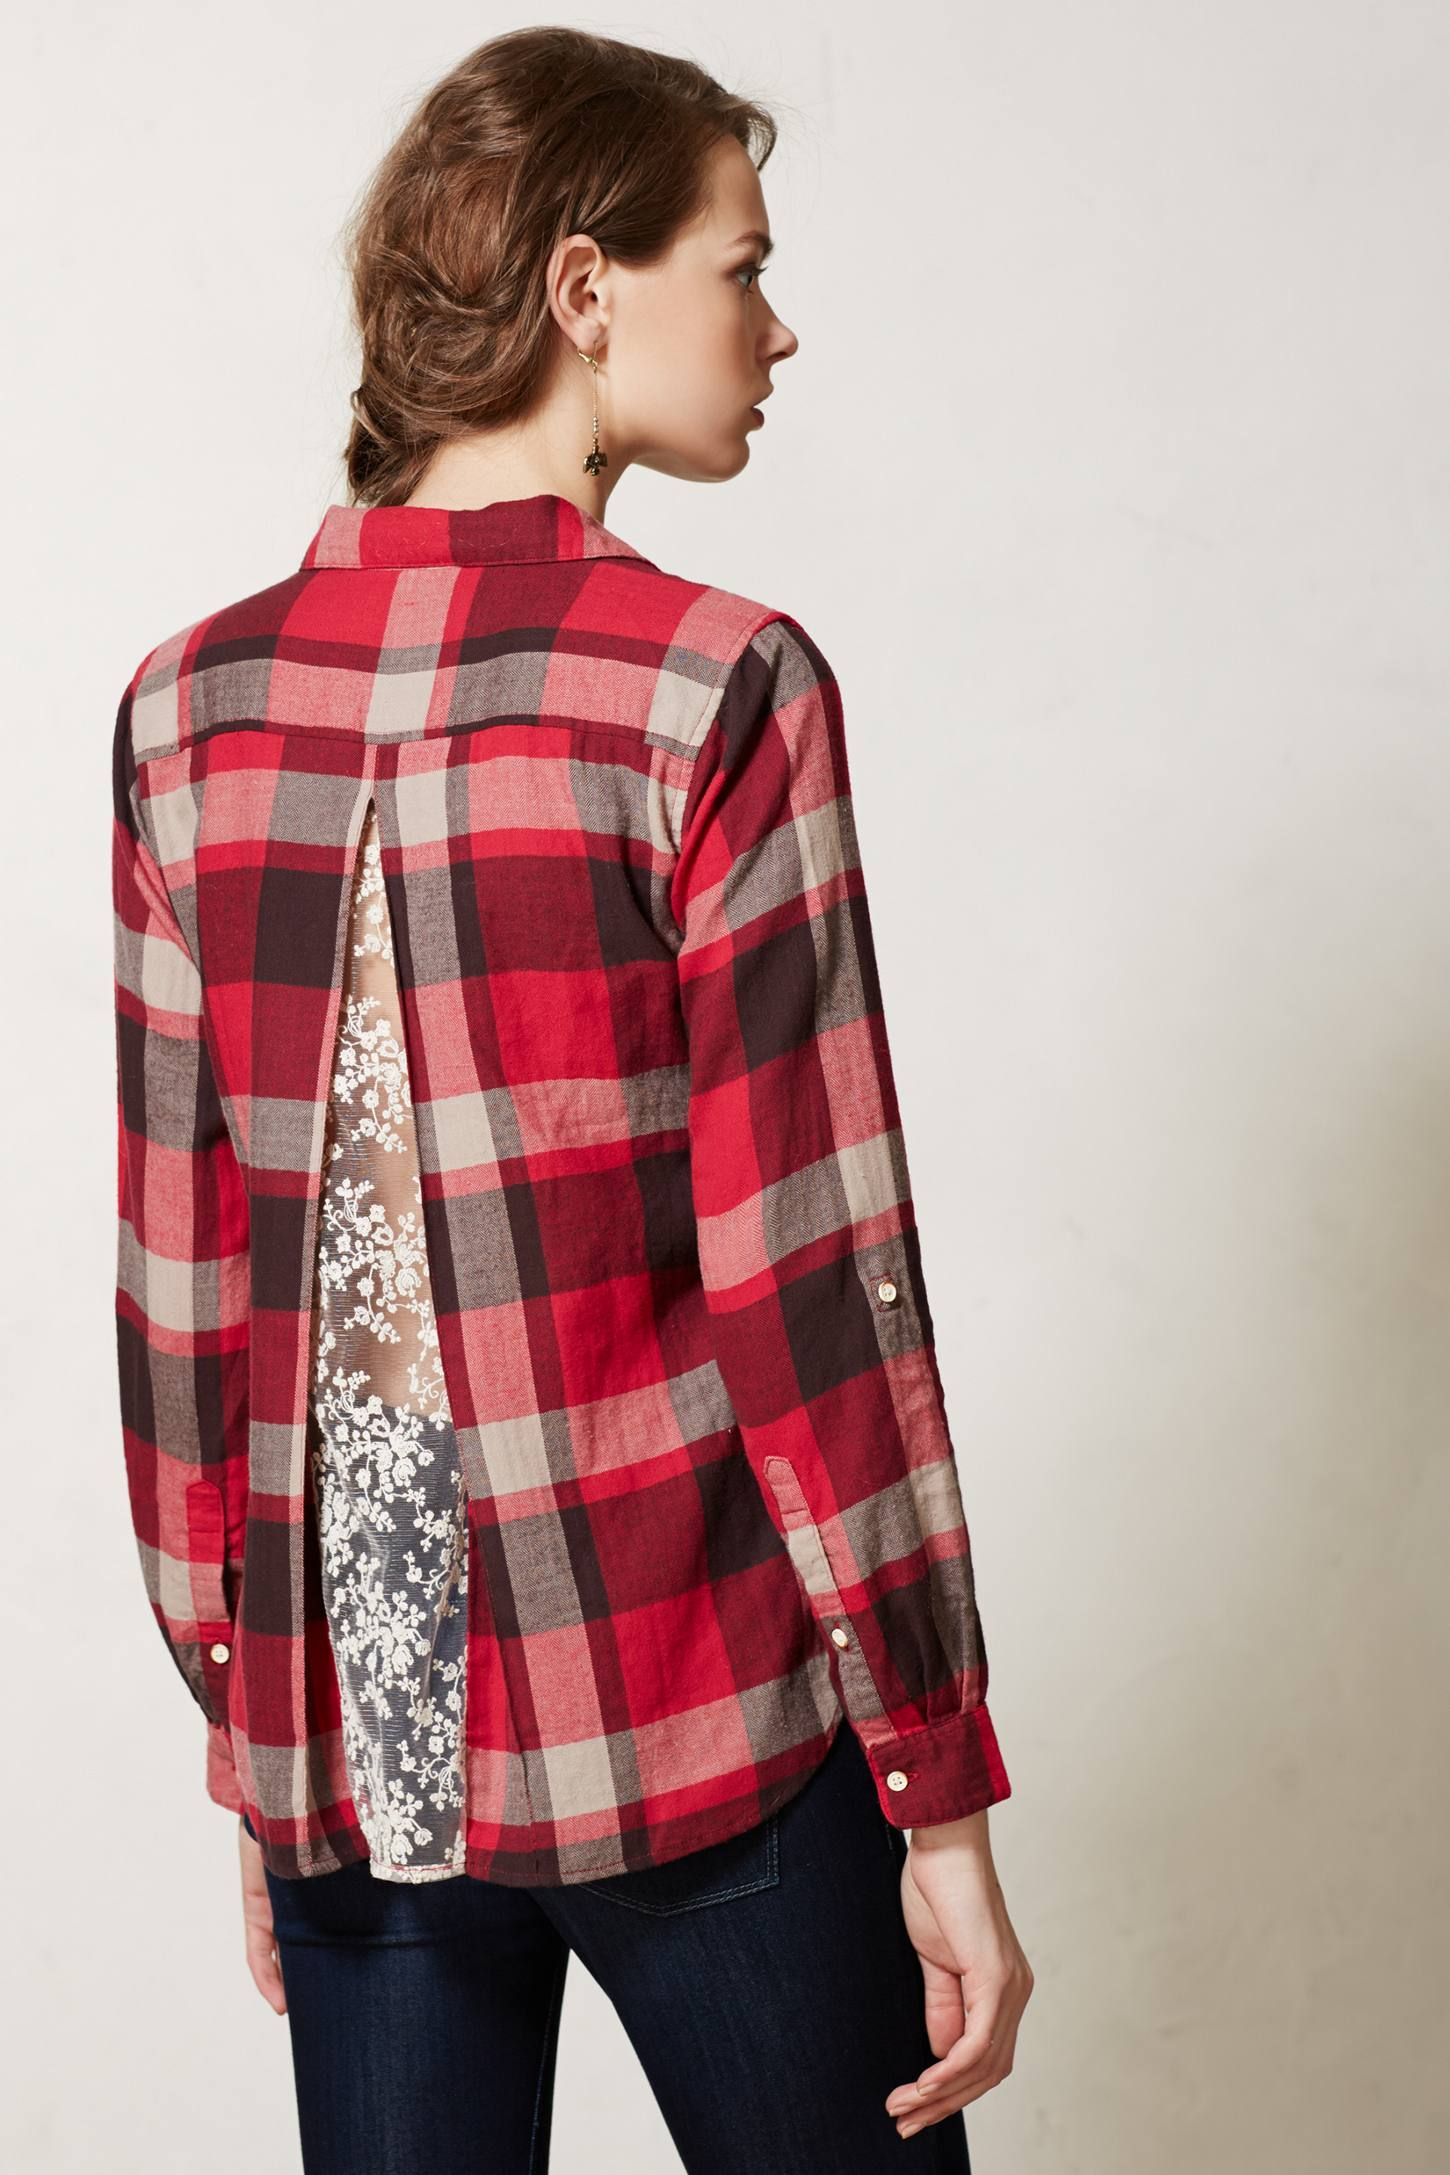 Flannel shirt ideas  Lace inset in plaid shirt  Projects  Pinterest  Refashioning